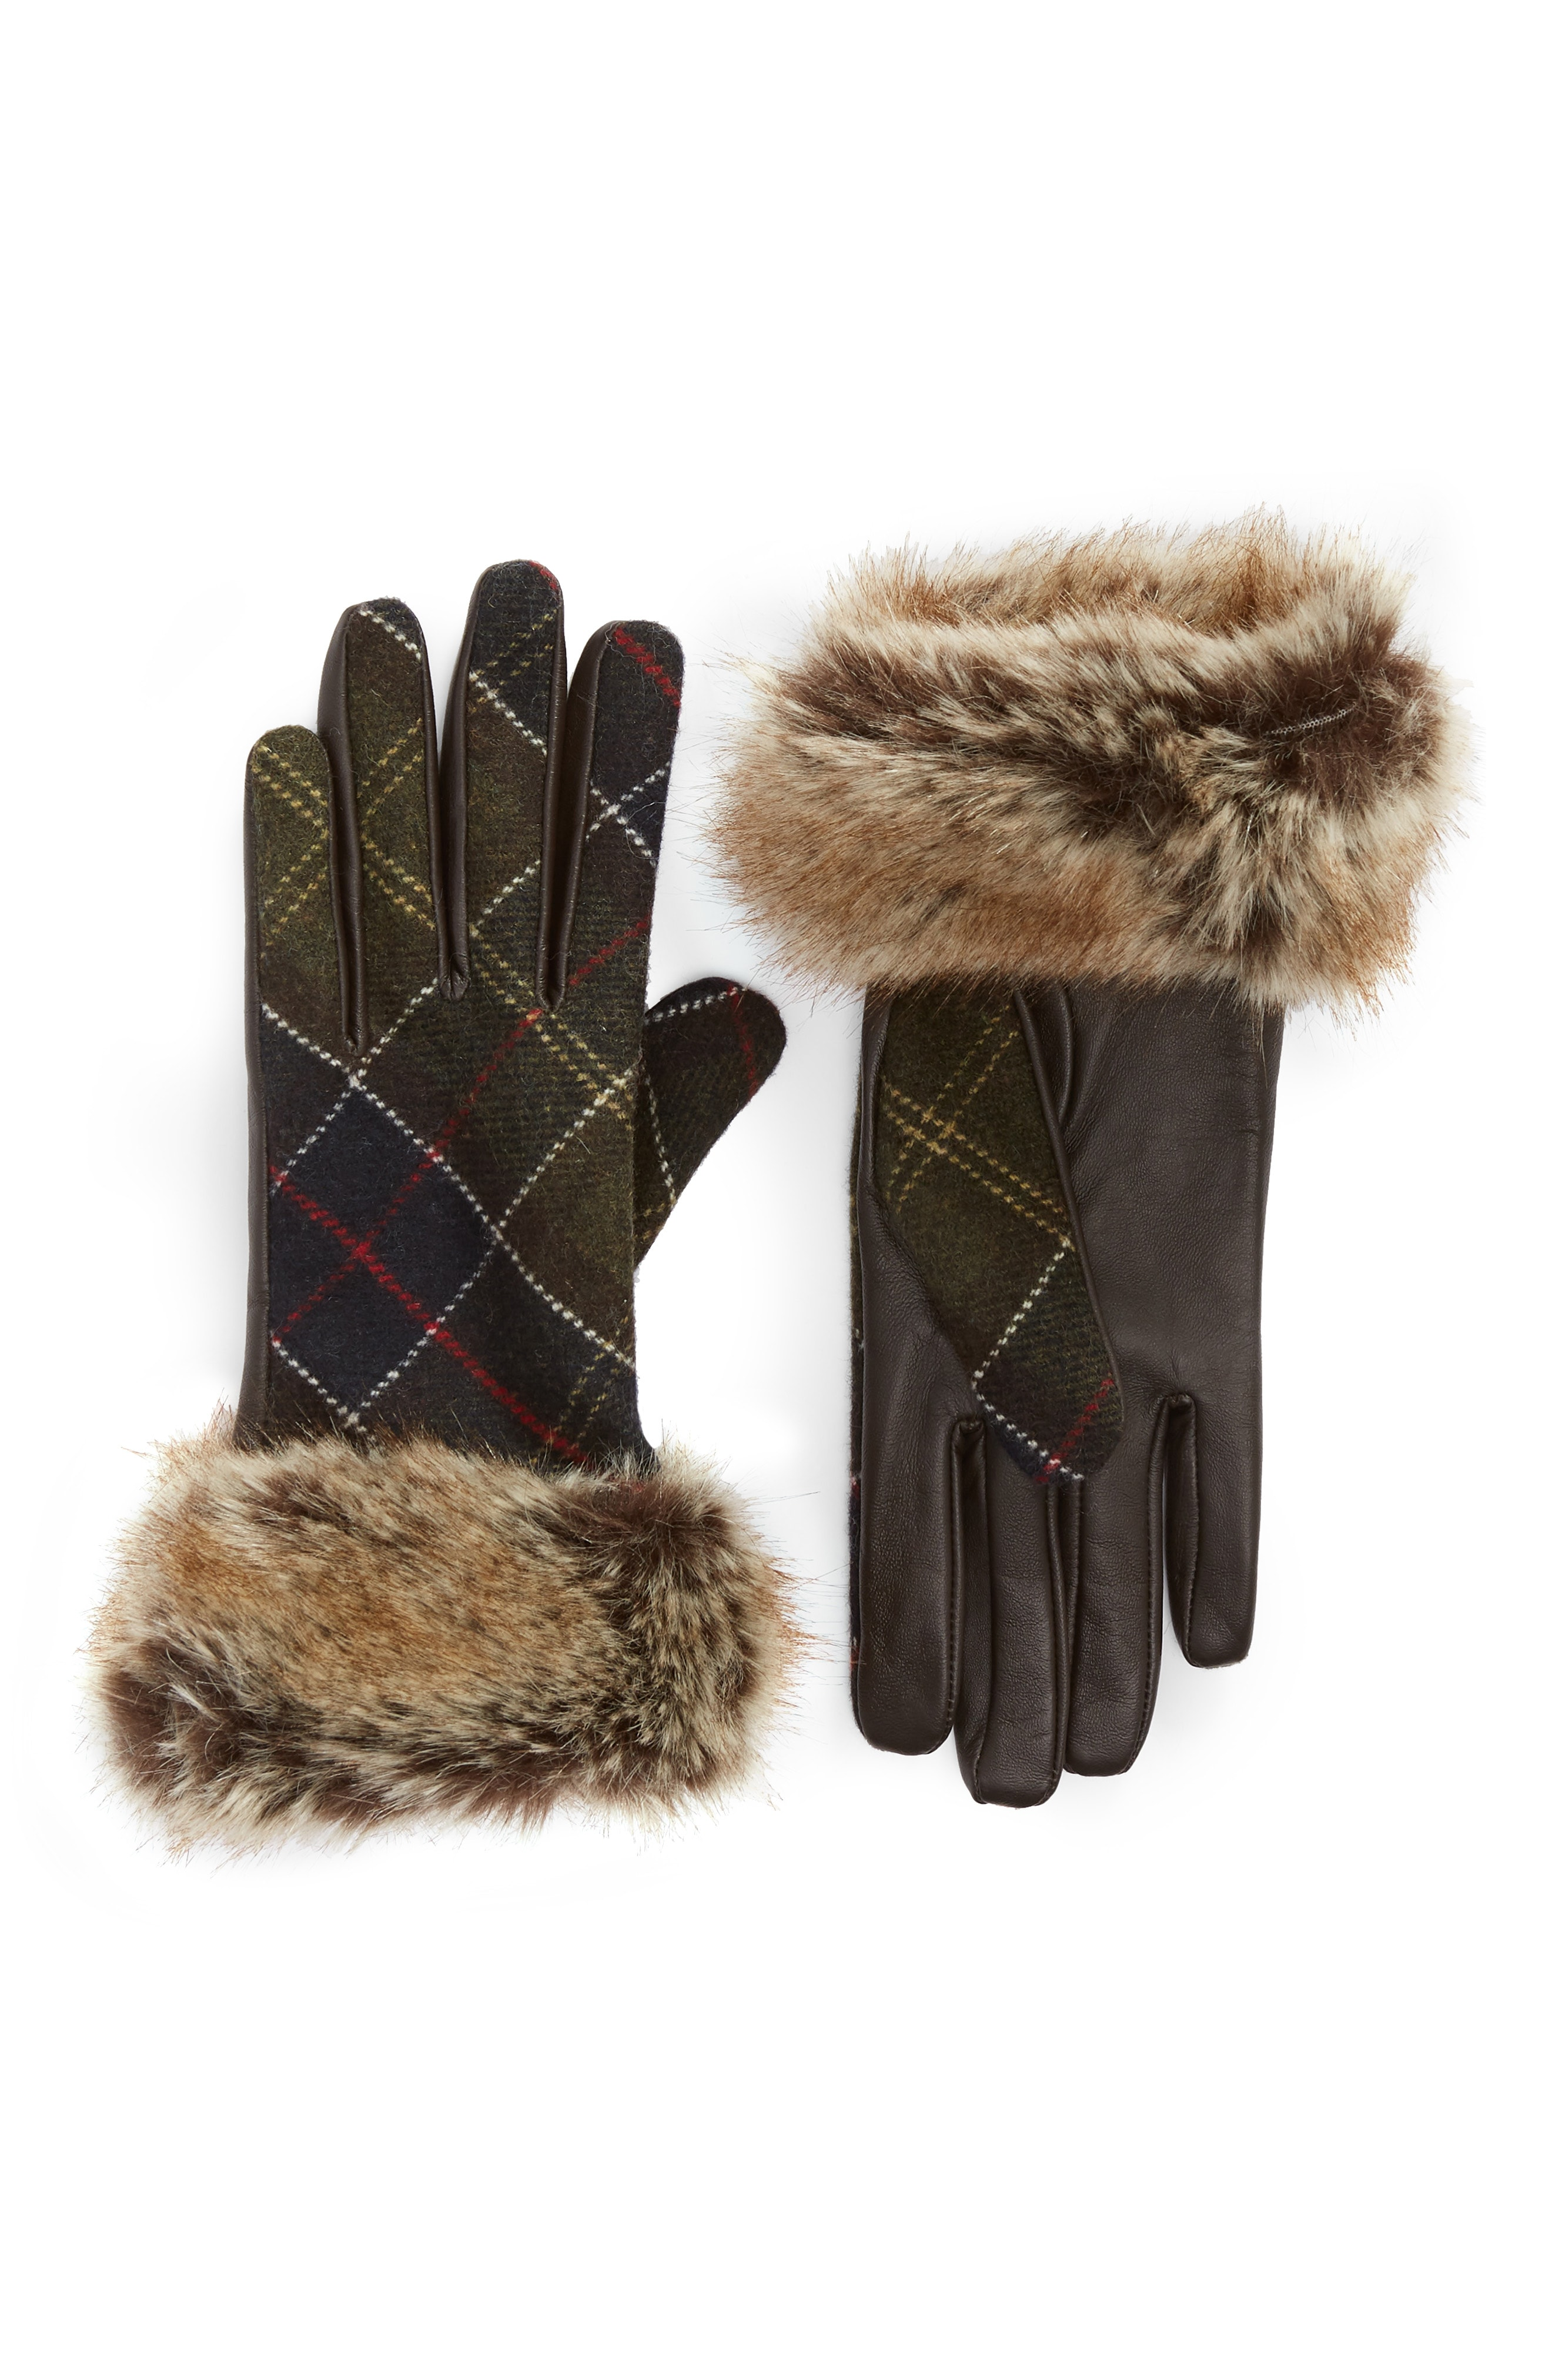 Barbour Linton Leather & Wool Gloves